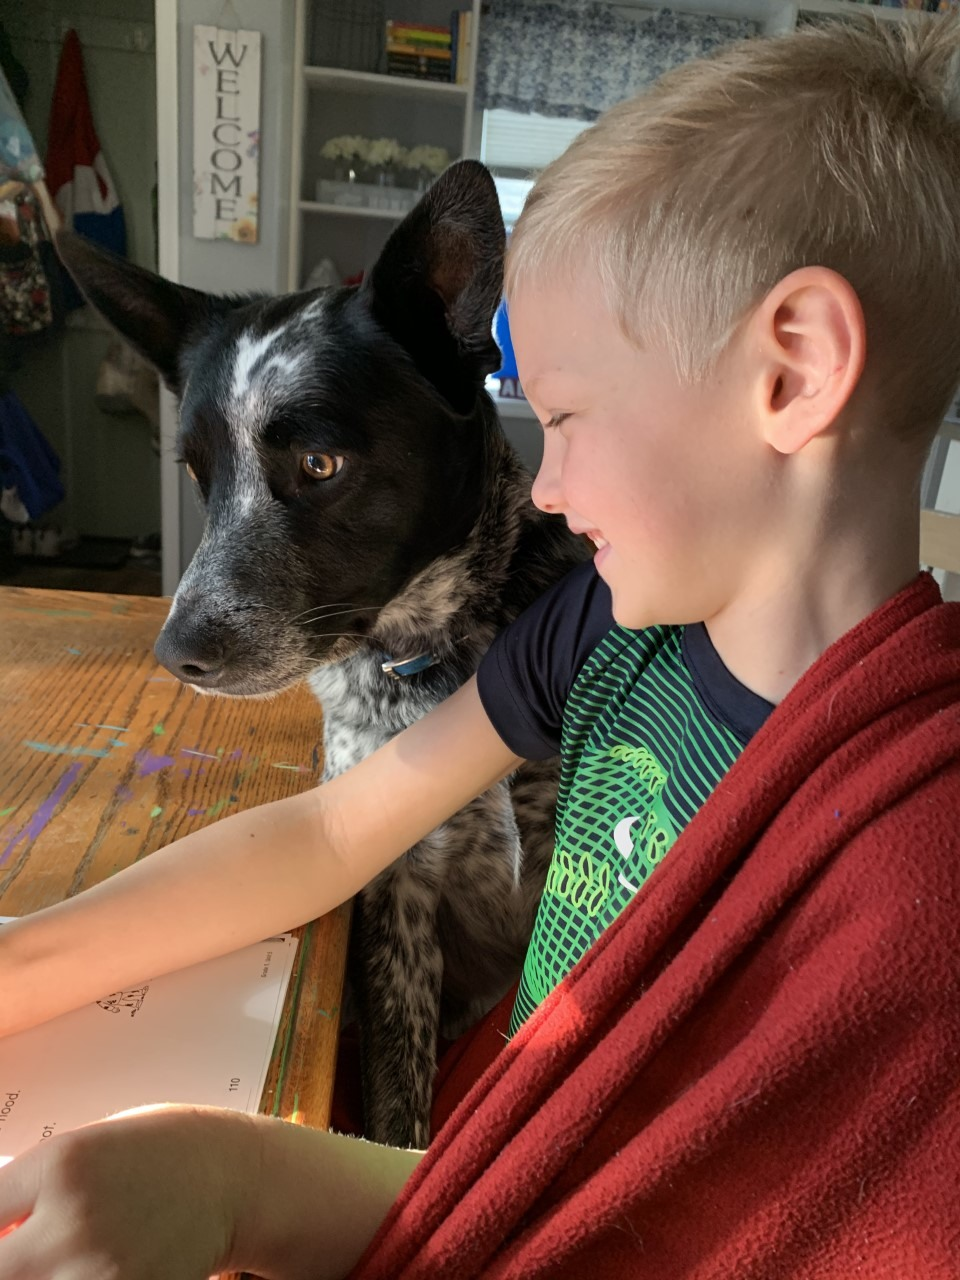 Smiling boy with dog at table